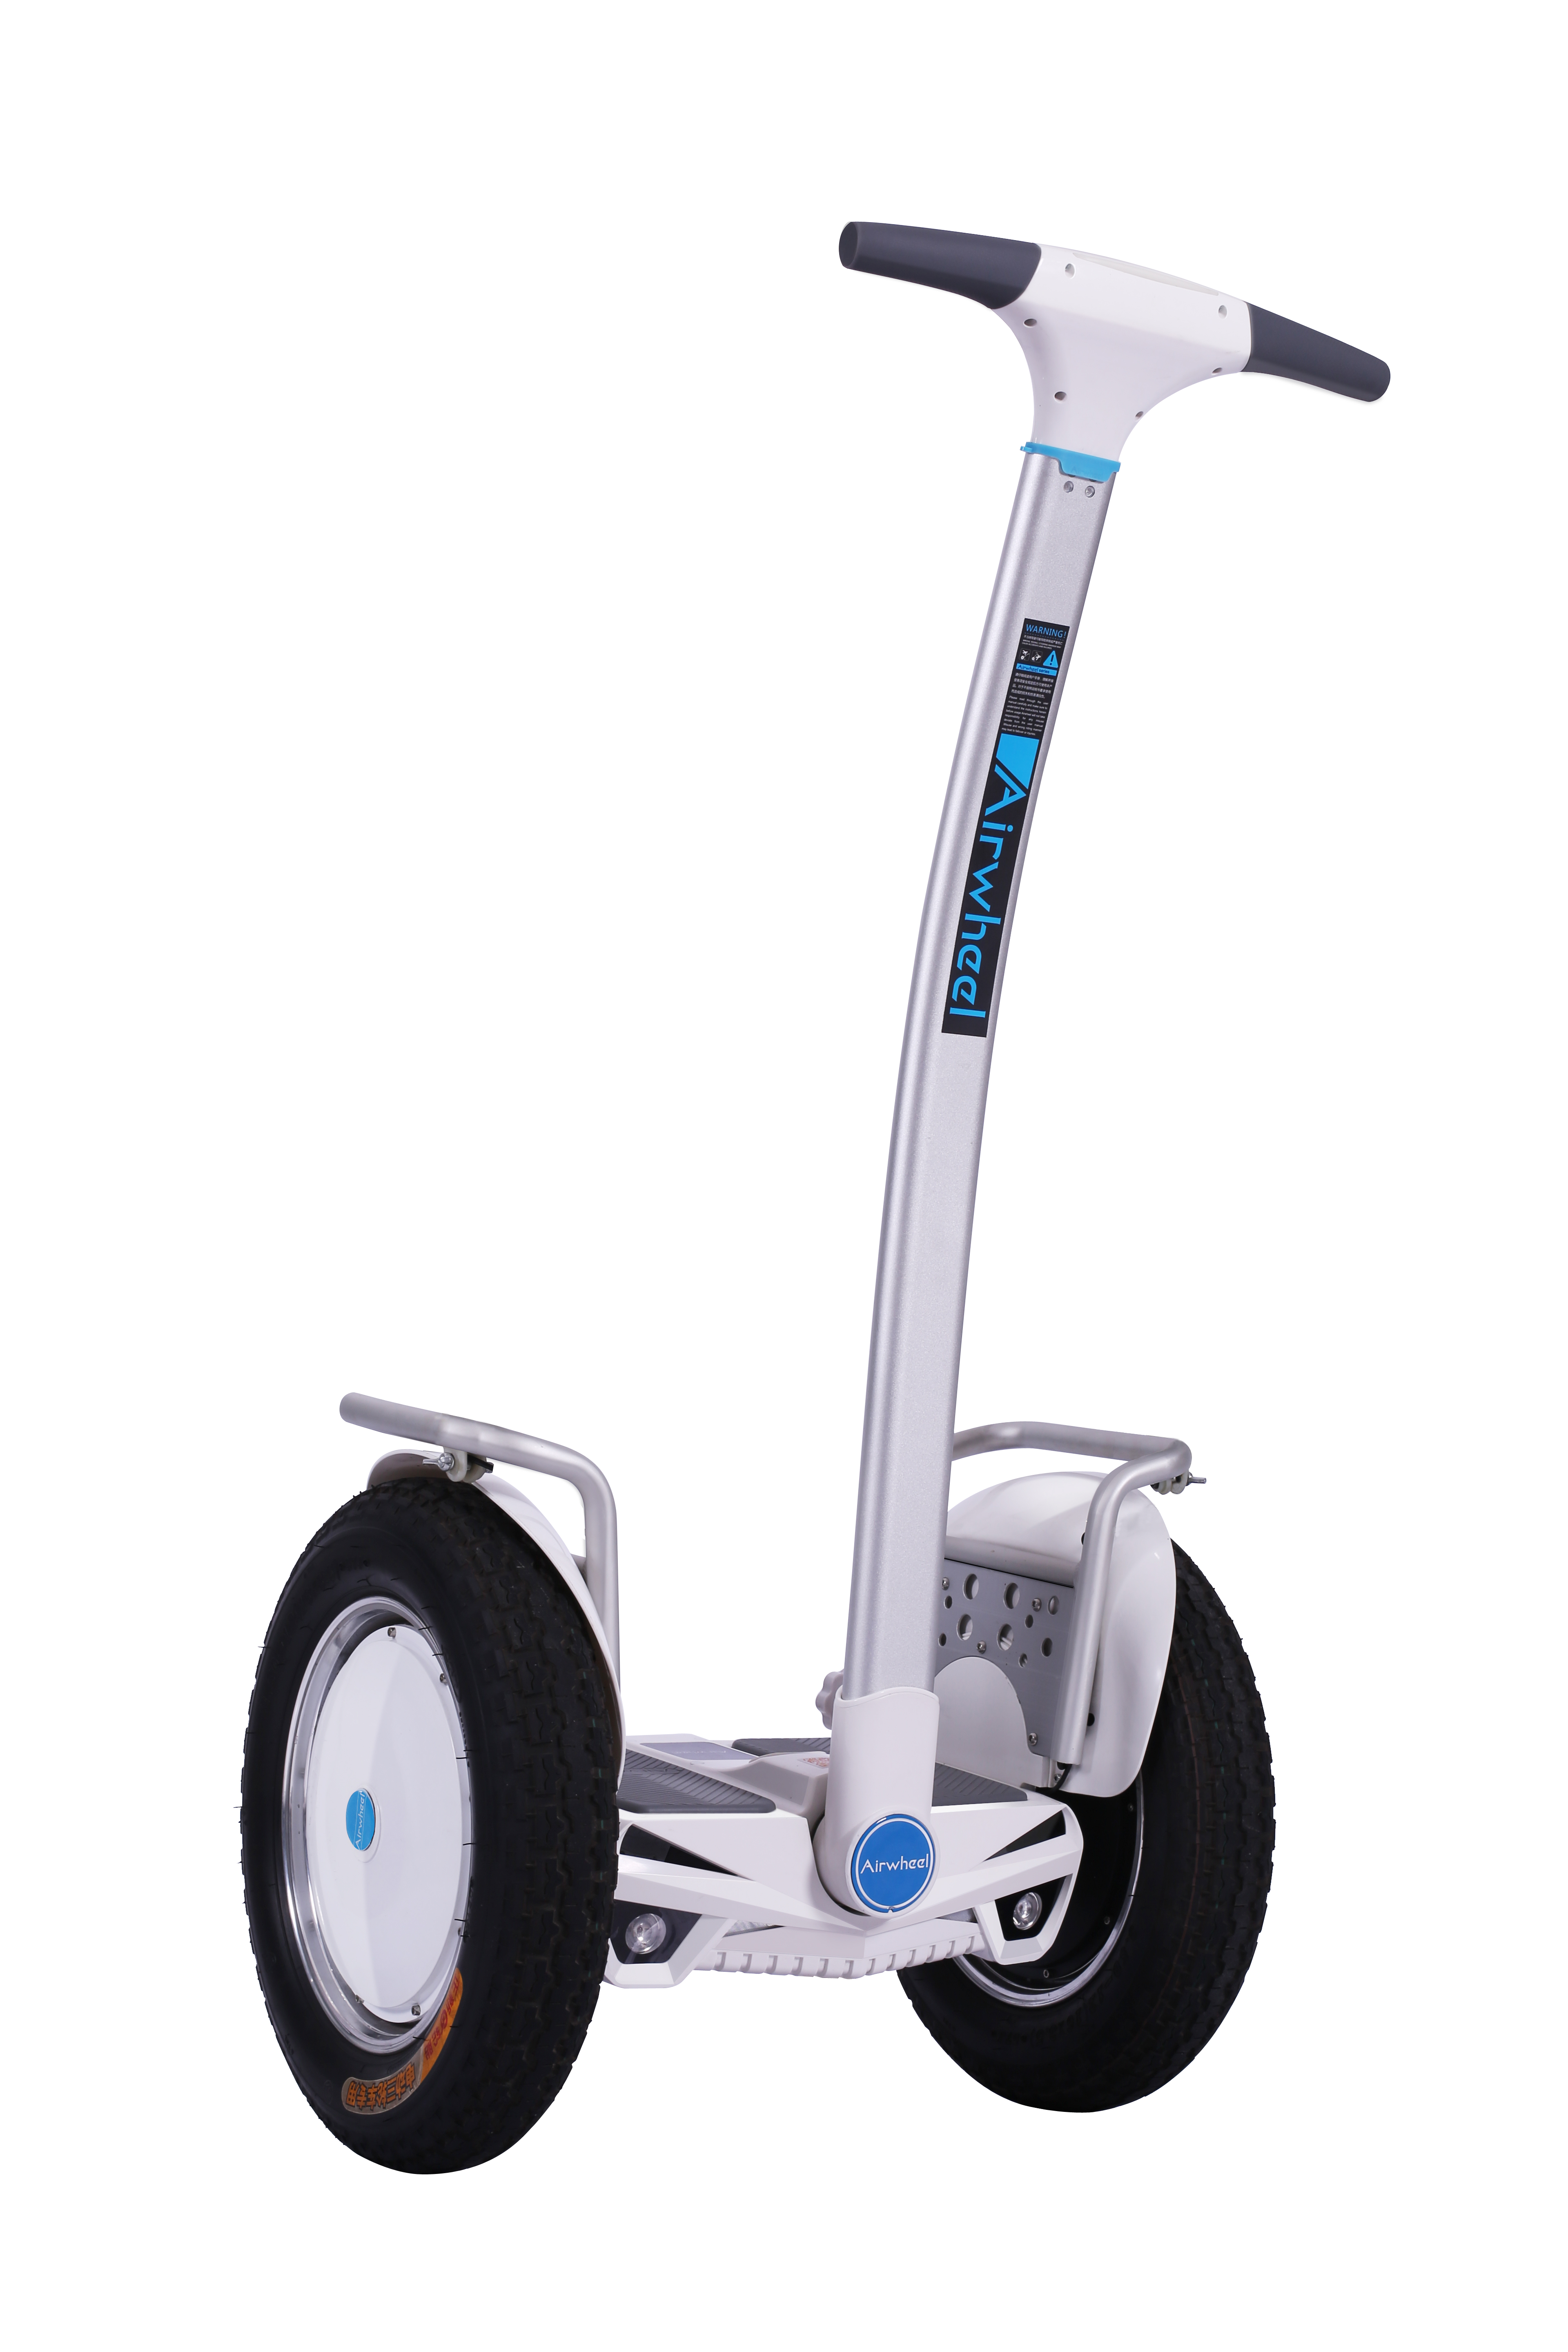 http://www.airwheel.net/images/Airwheel_1_S5.jpg